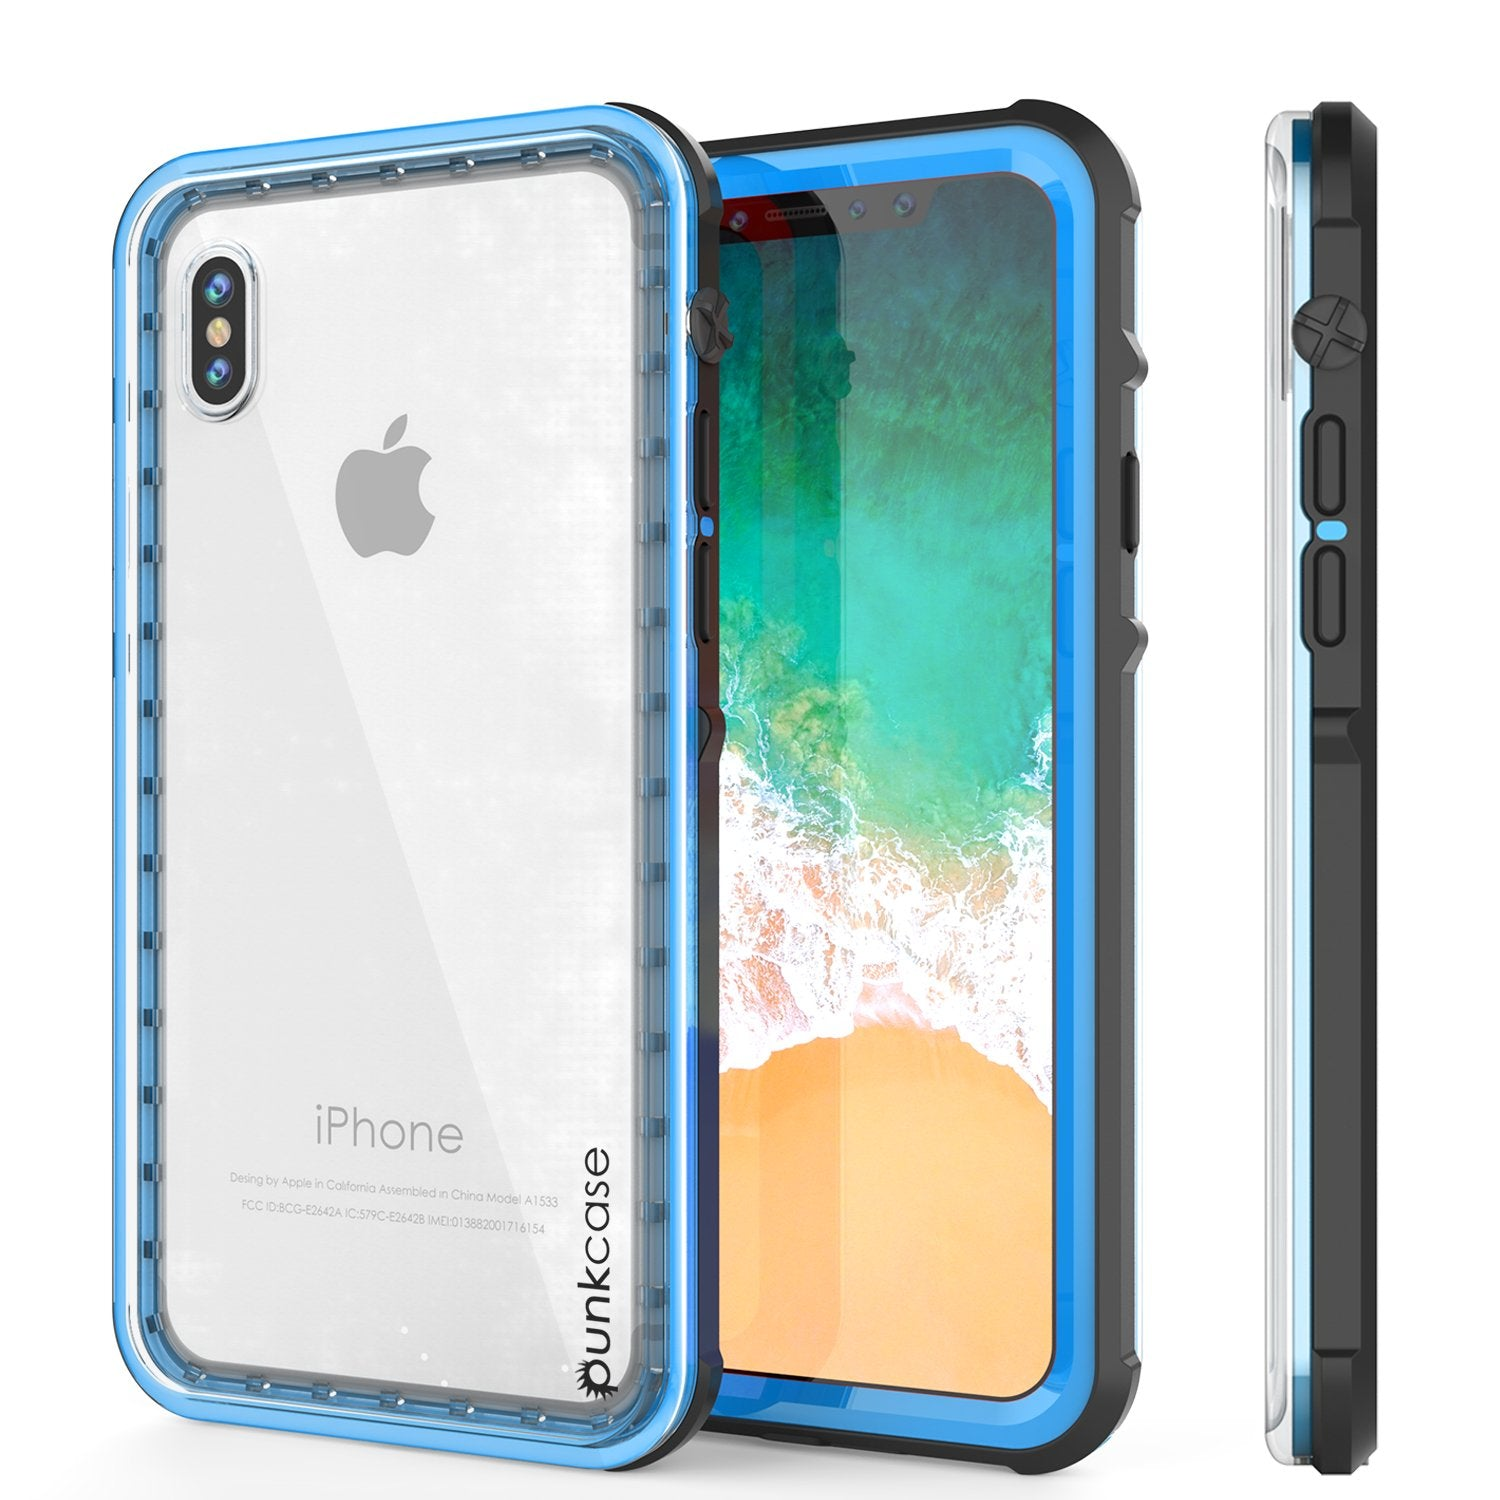 iPhone X Punkcase CRYSTAL SERIES Cover W/Screen Protector, Light blue